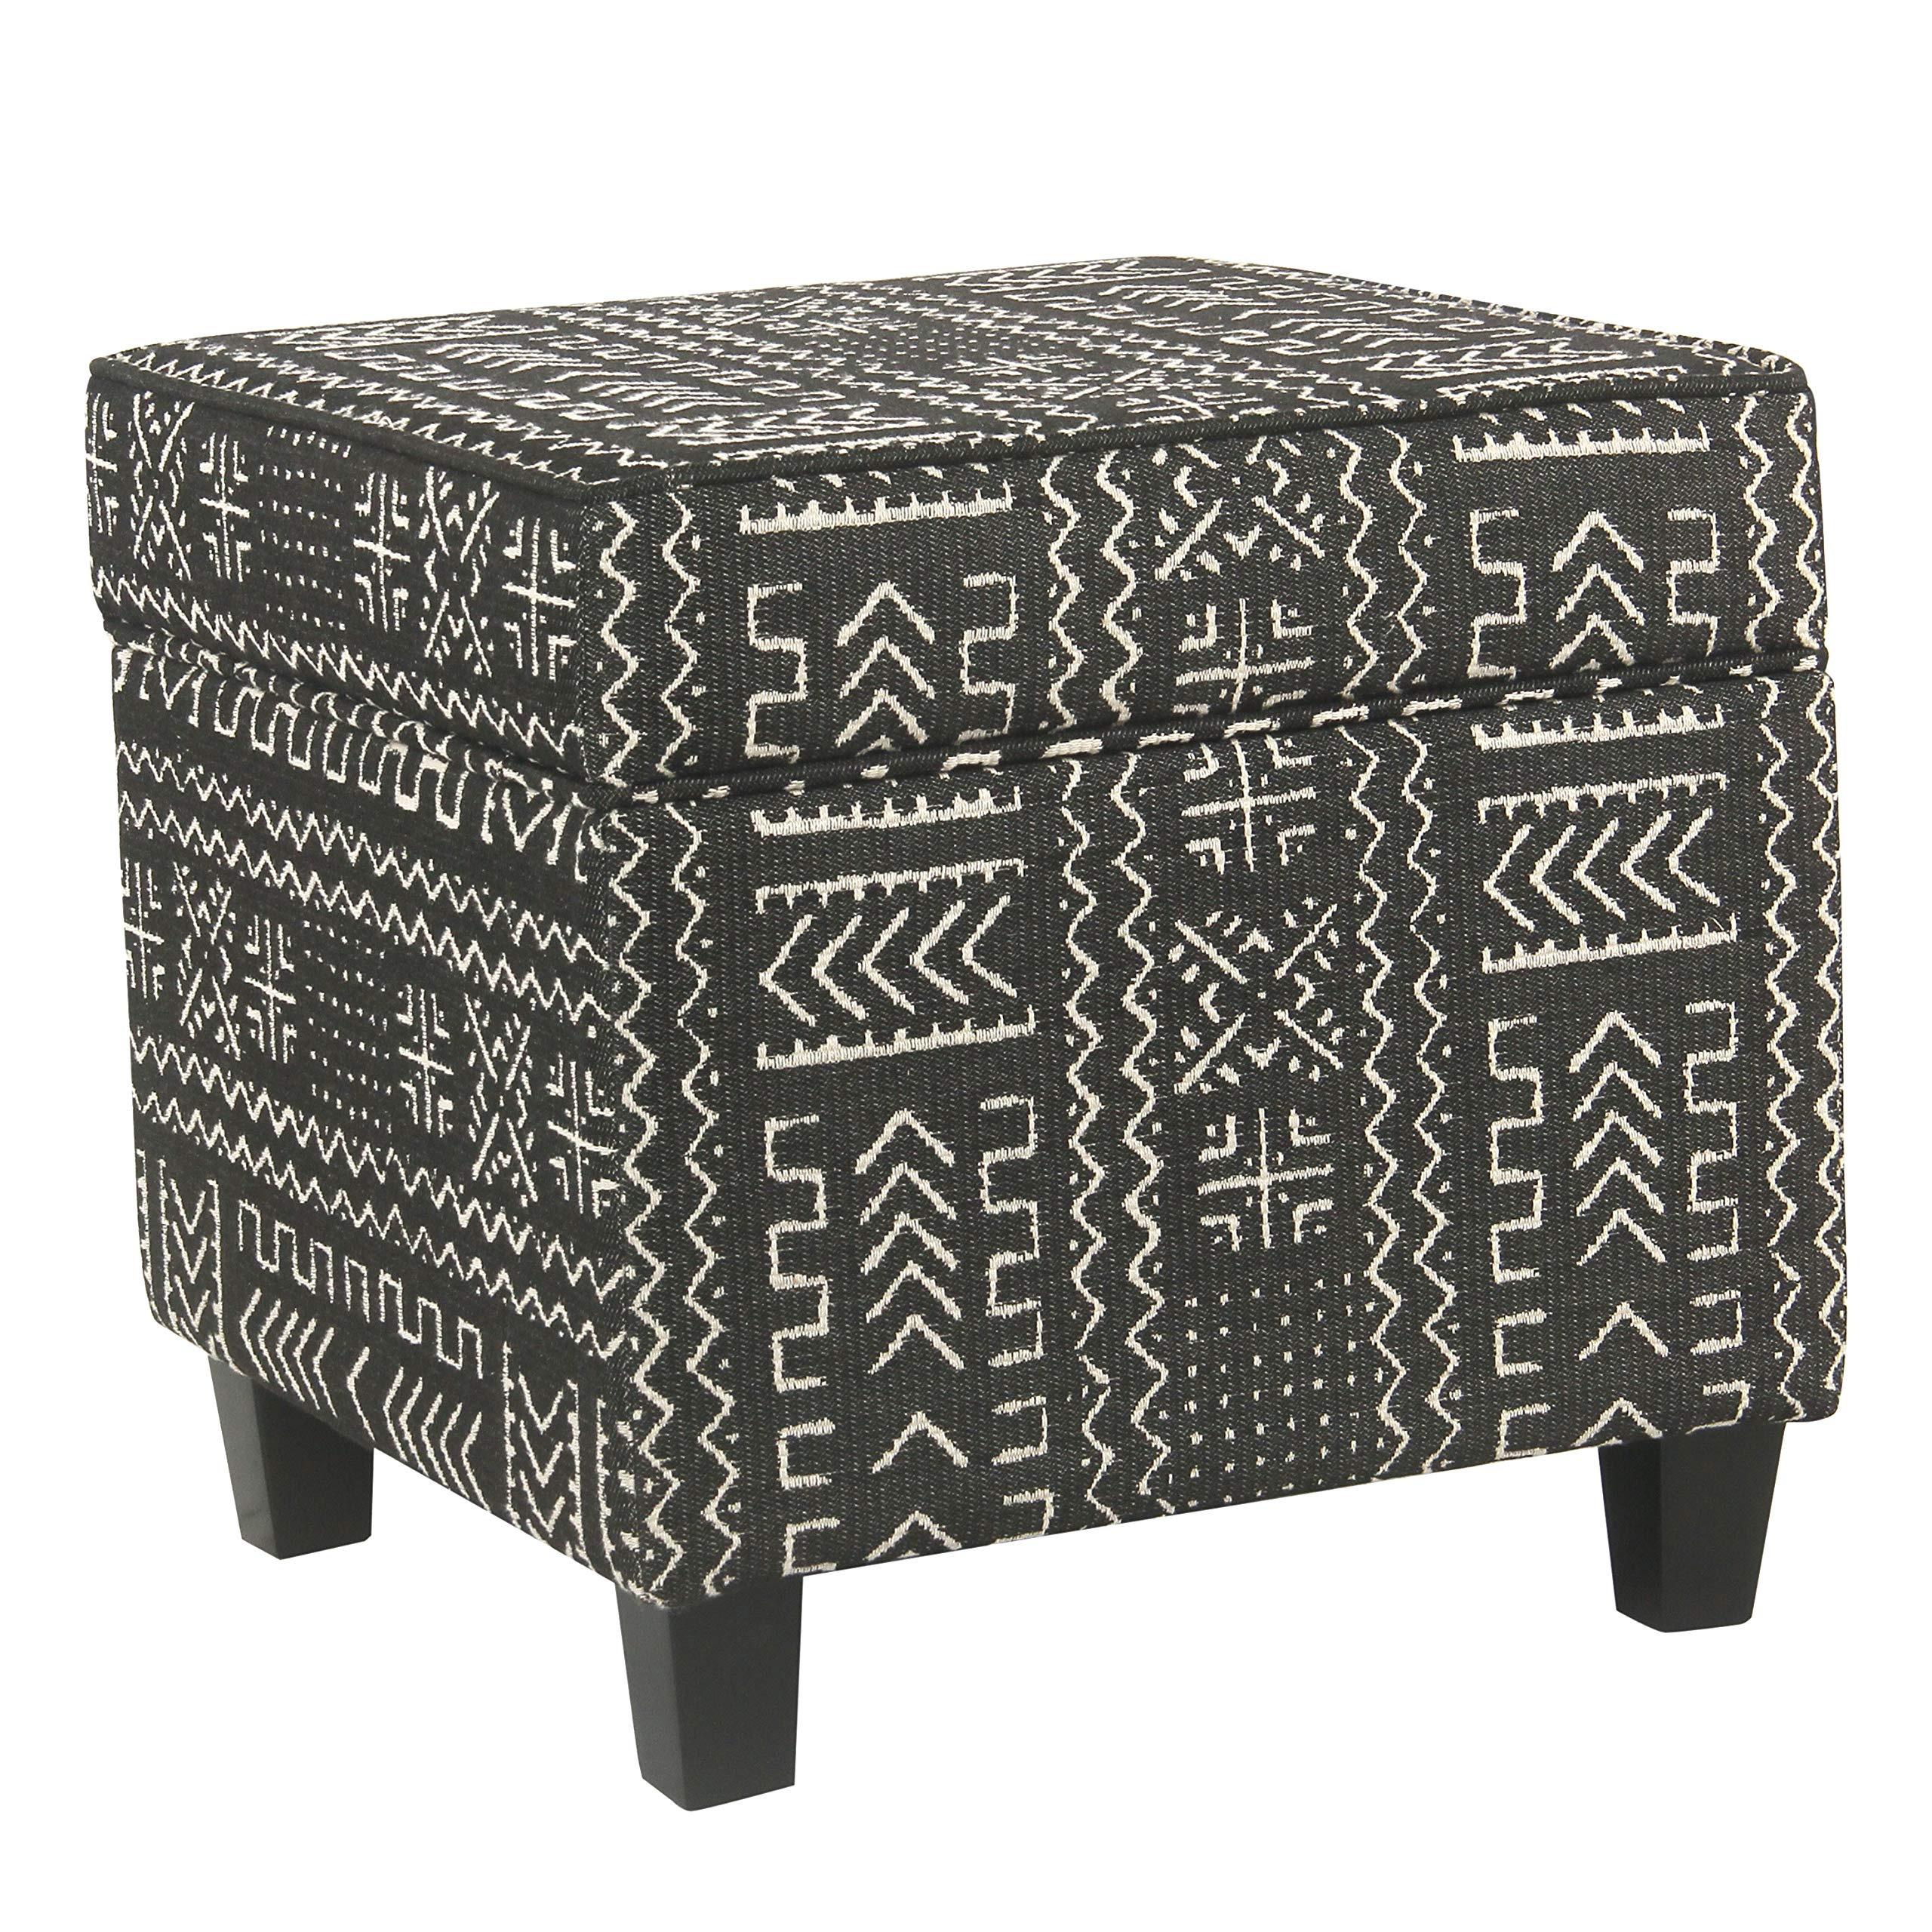 HomePop Square Storage Ottoman with Lift Off Lid, Onyx